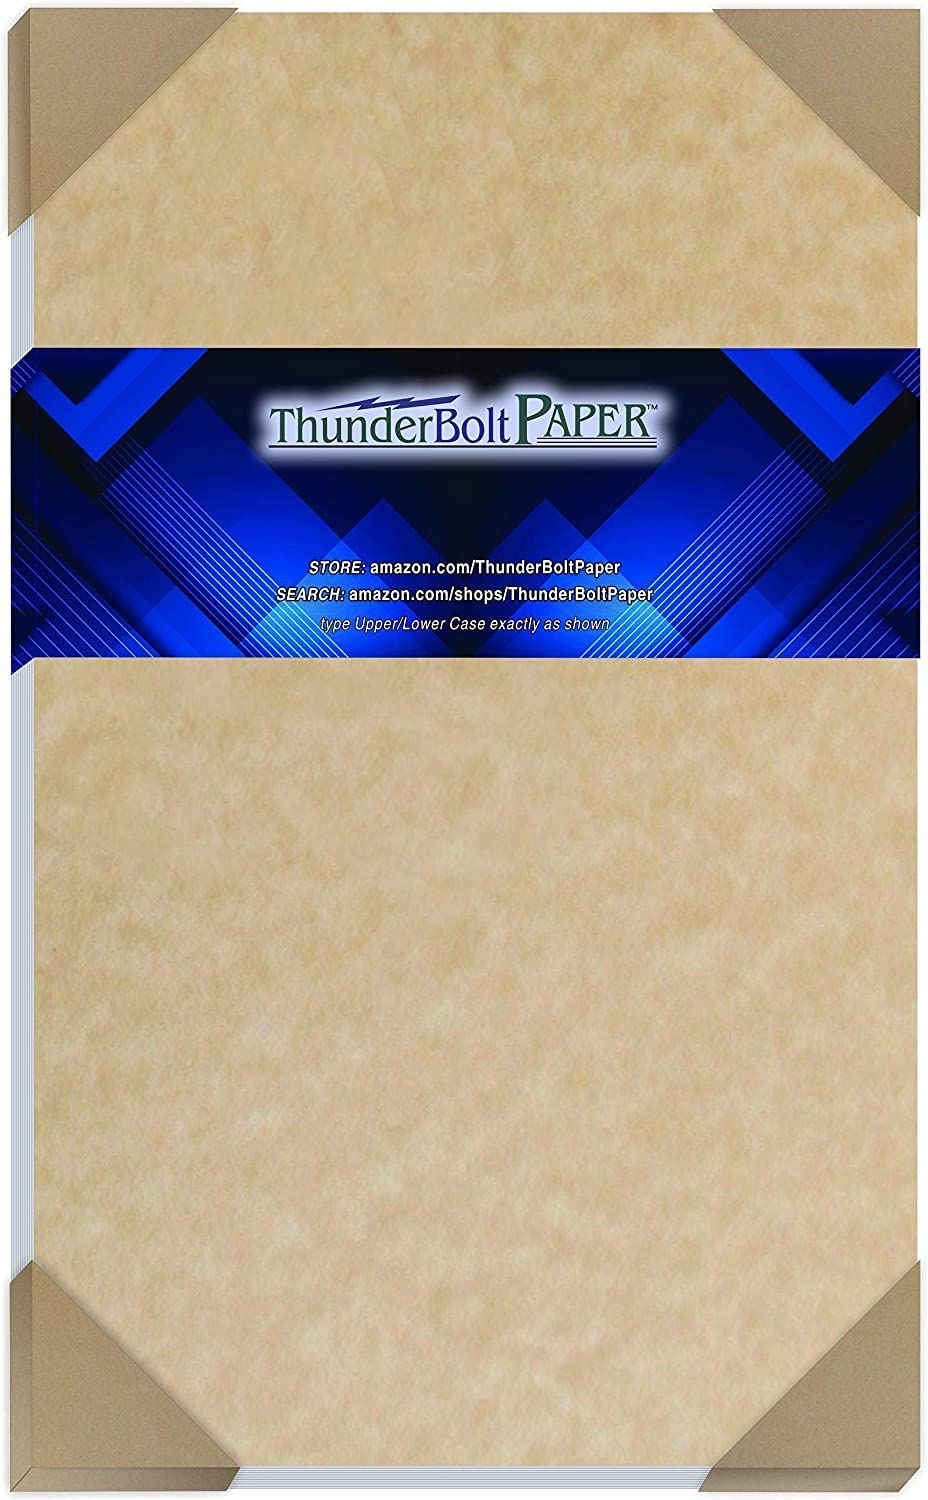 50 Light Brown Parchment 60# Text (=24# Bond) Paper Sheets - 8.5 X 14 Inches Standard Legal Size - 60 Pound is Not Card Weight - Vintage Colored Old Parchment Semblance